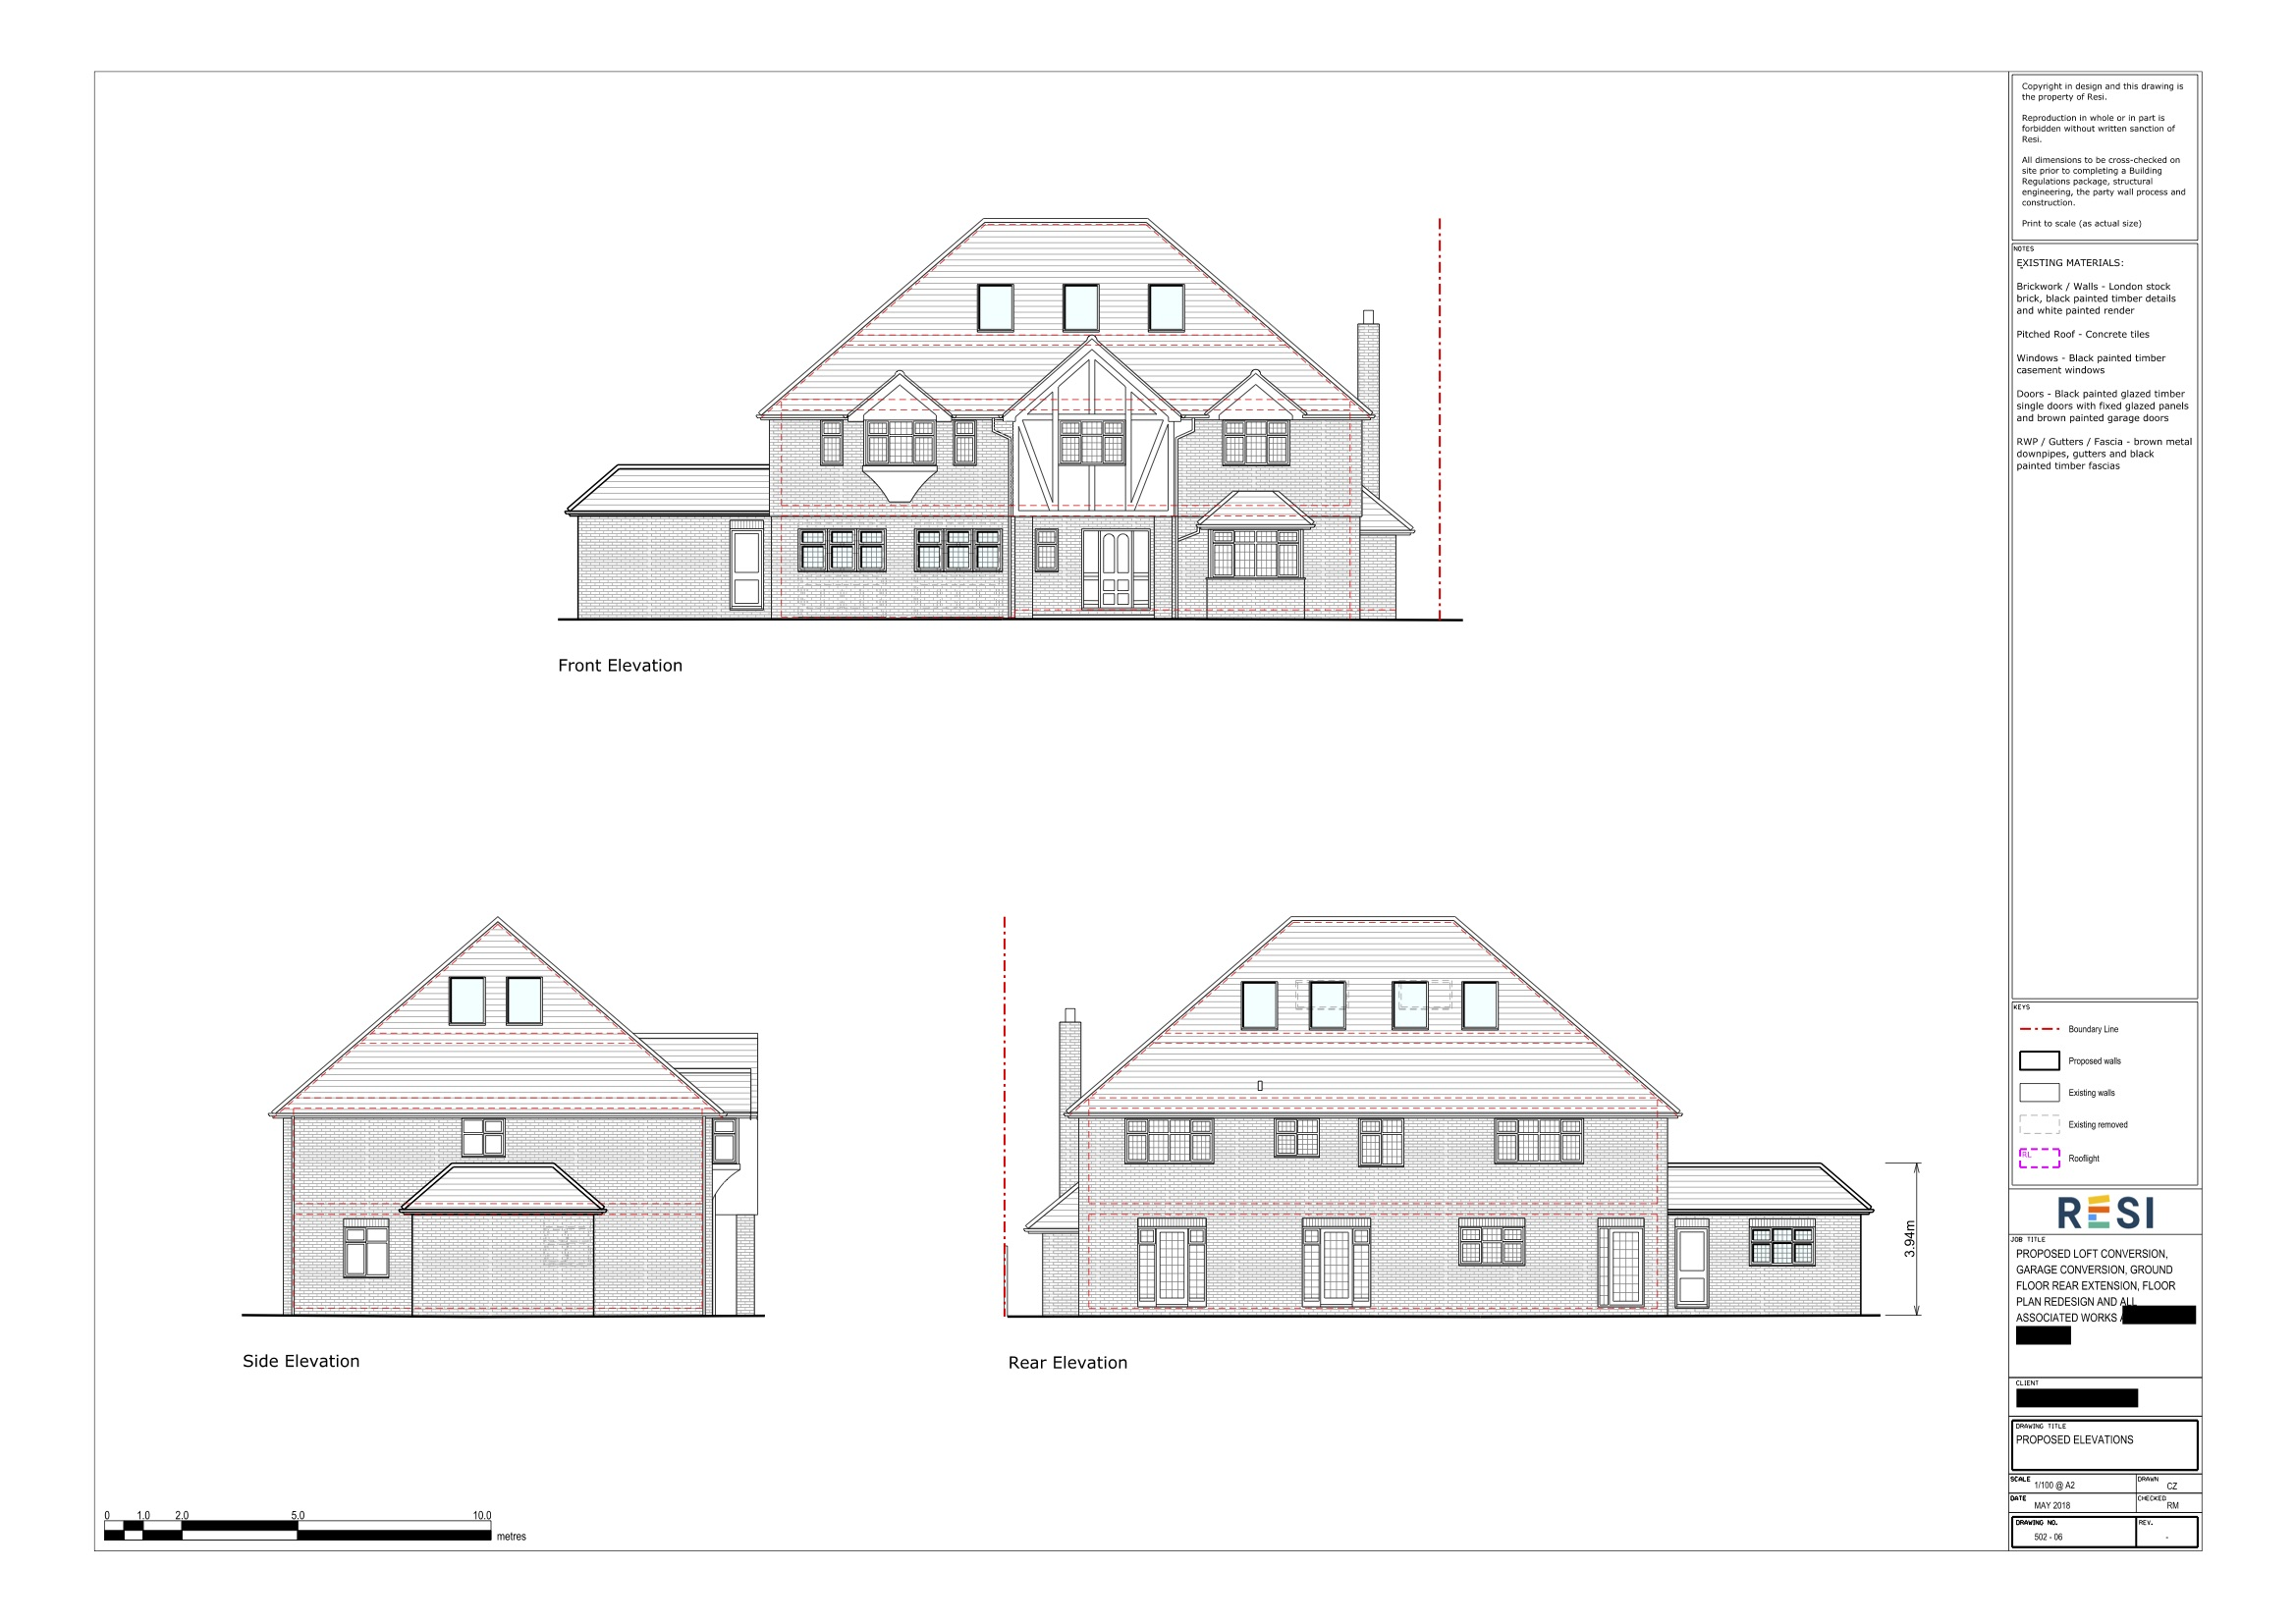 Architectural drawing package 2   elevations